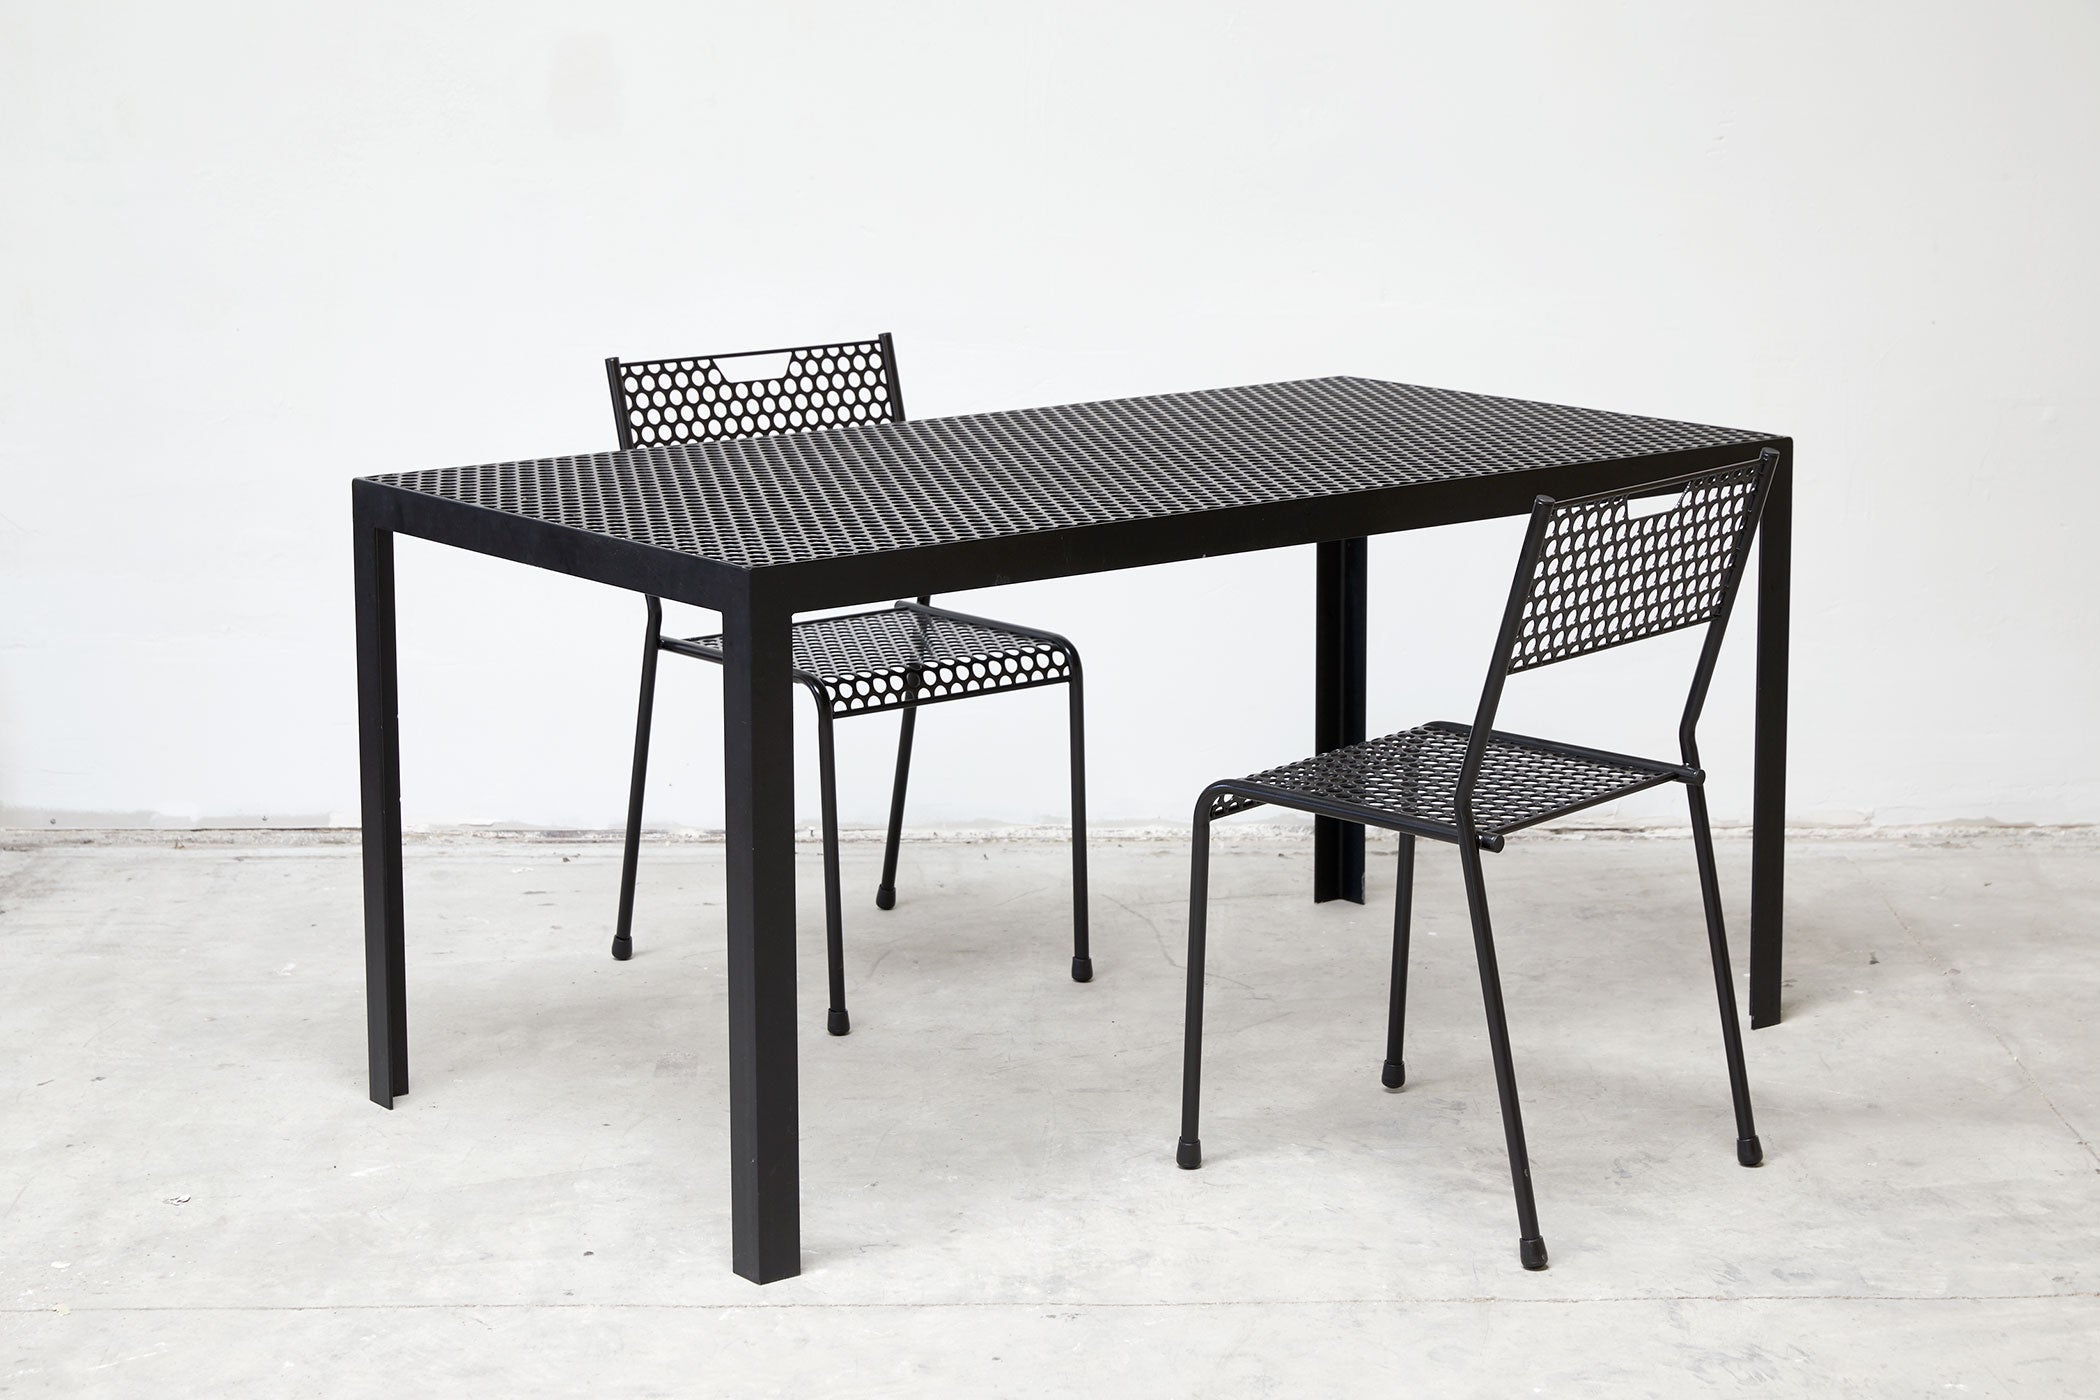 RAD Furniture's Perforated Dining Chair and Perforated Dining Table